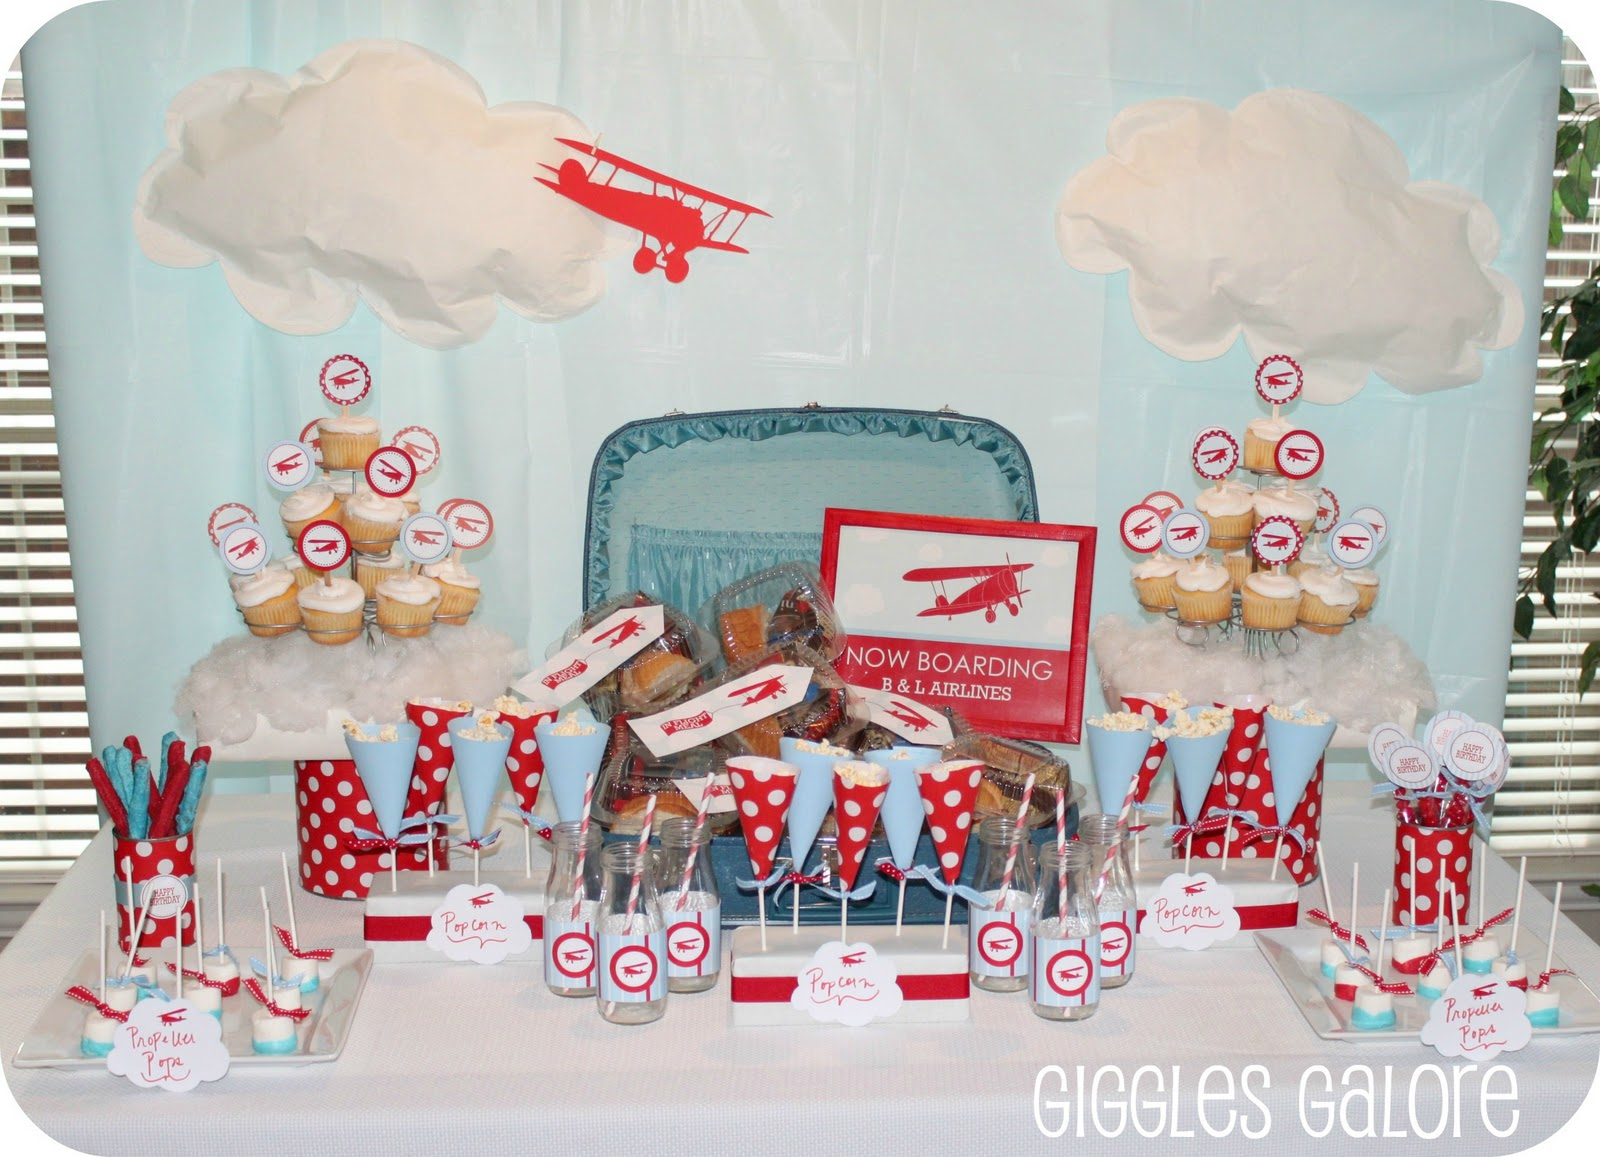 Now boarding b l airlines airplane party for Airplane decoration ideas